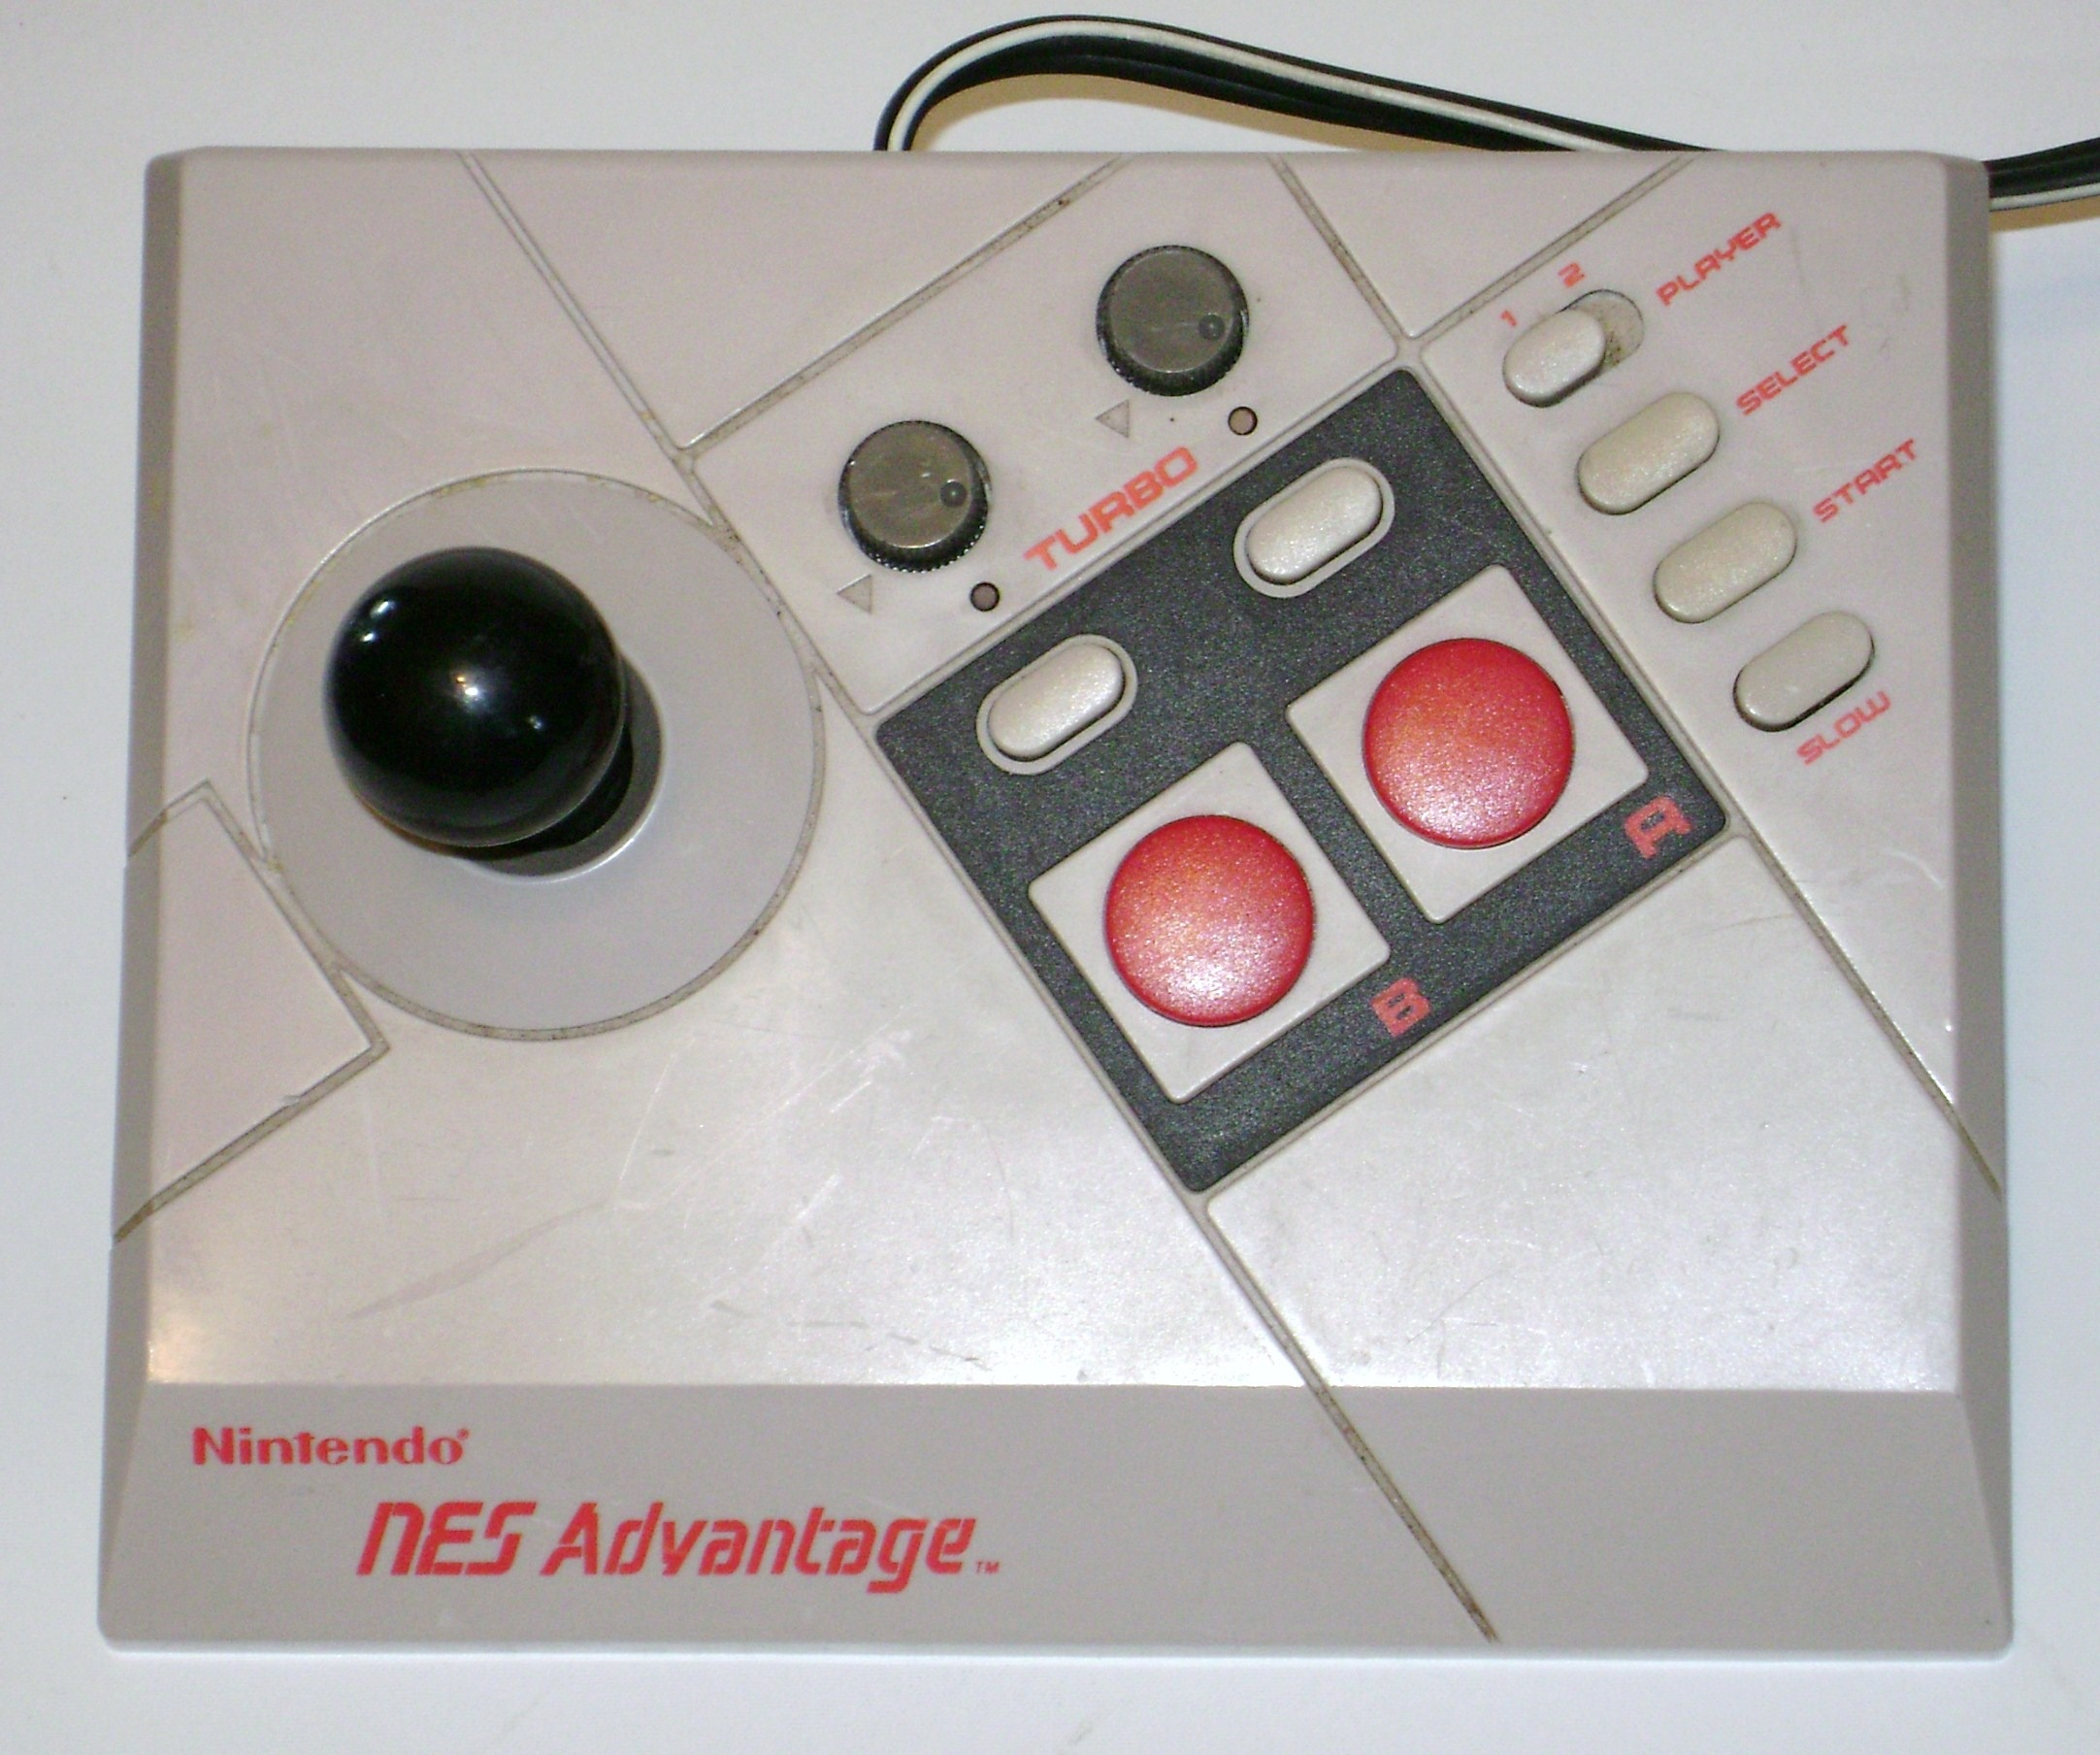 Retro Controllers and More: Return to Retro in Modern Gaming